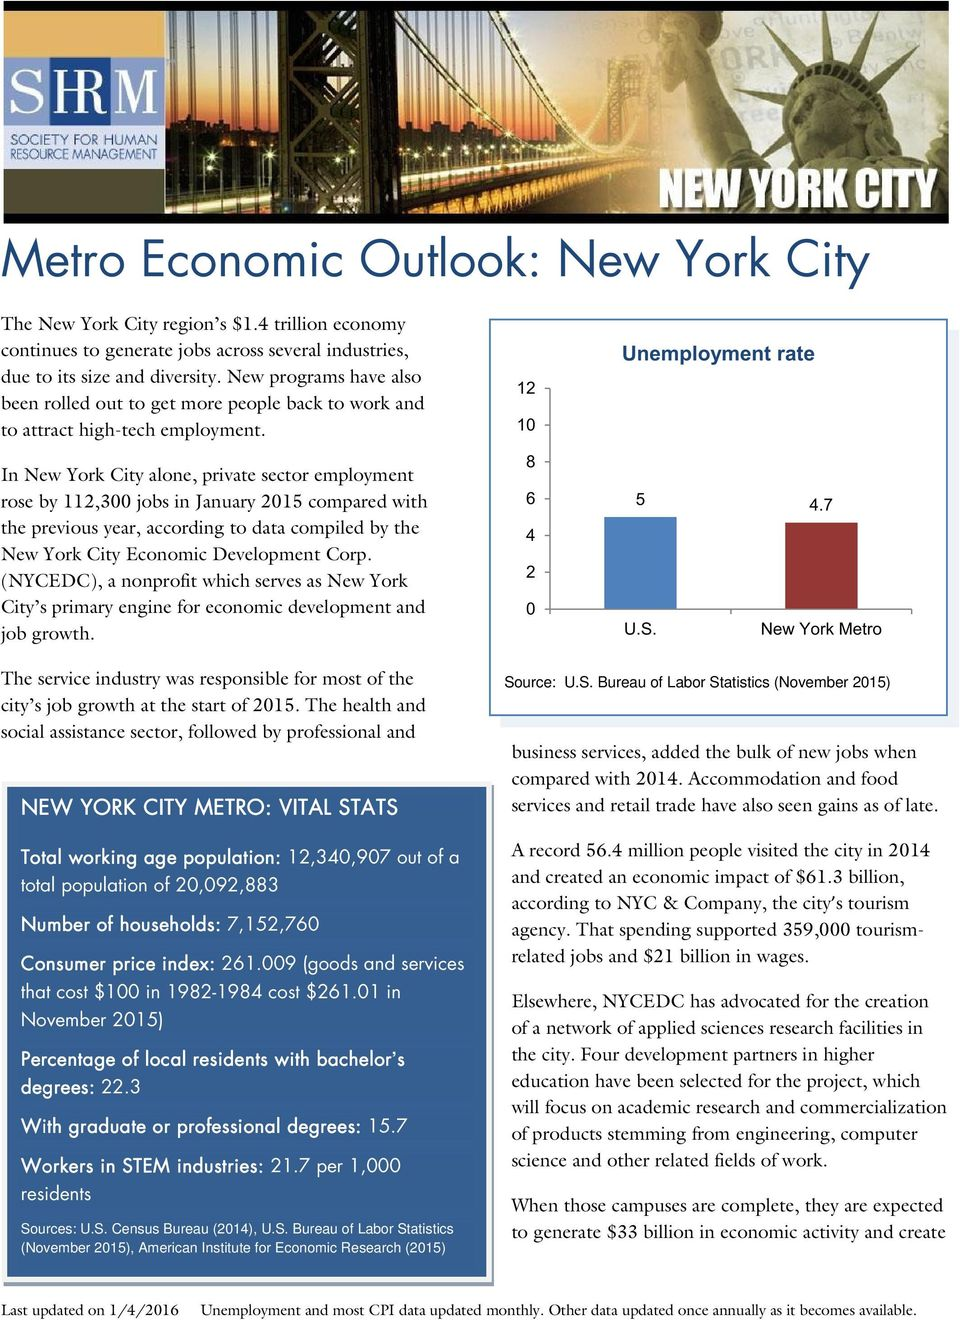 In New York City alone, private sector employment rose by 112,300 jobs in January 2015 compared with the previous year, according to data compiled by the New York City Economic Development Corp.